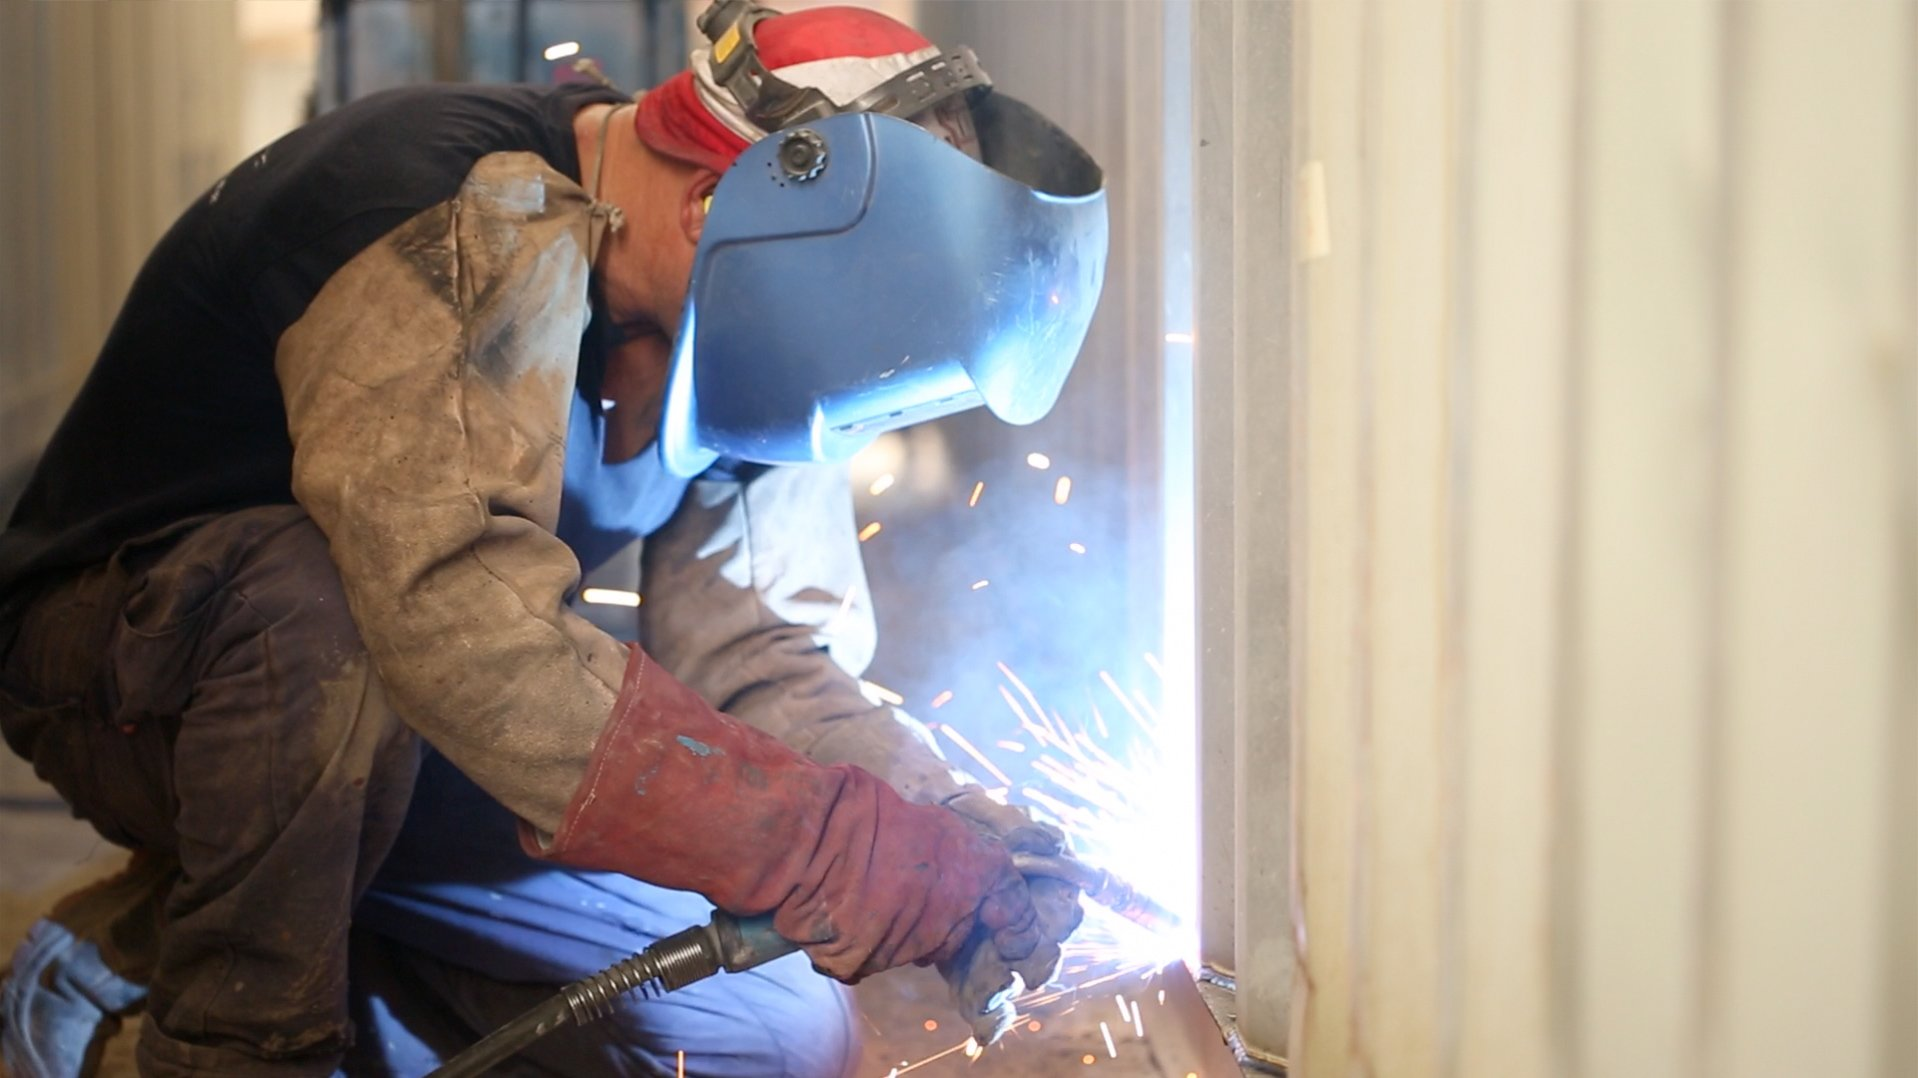 Man welding a container